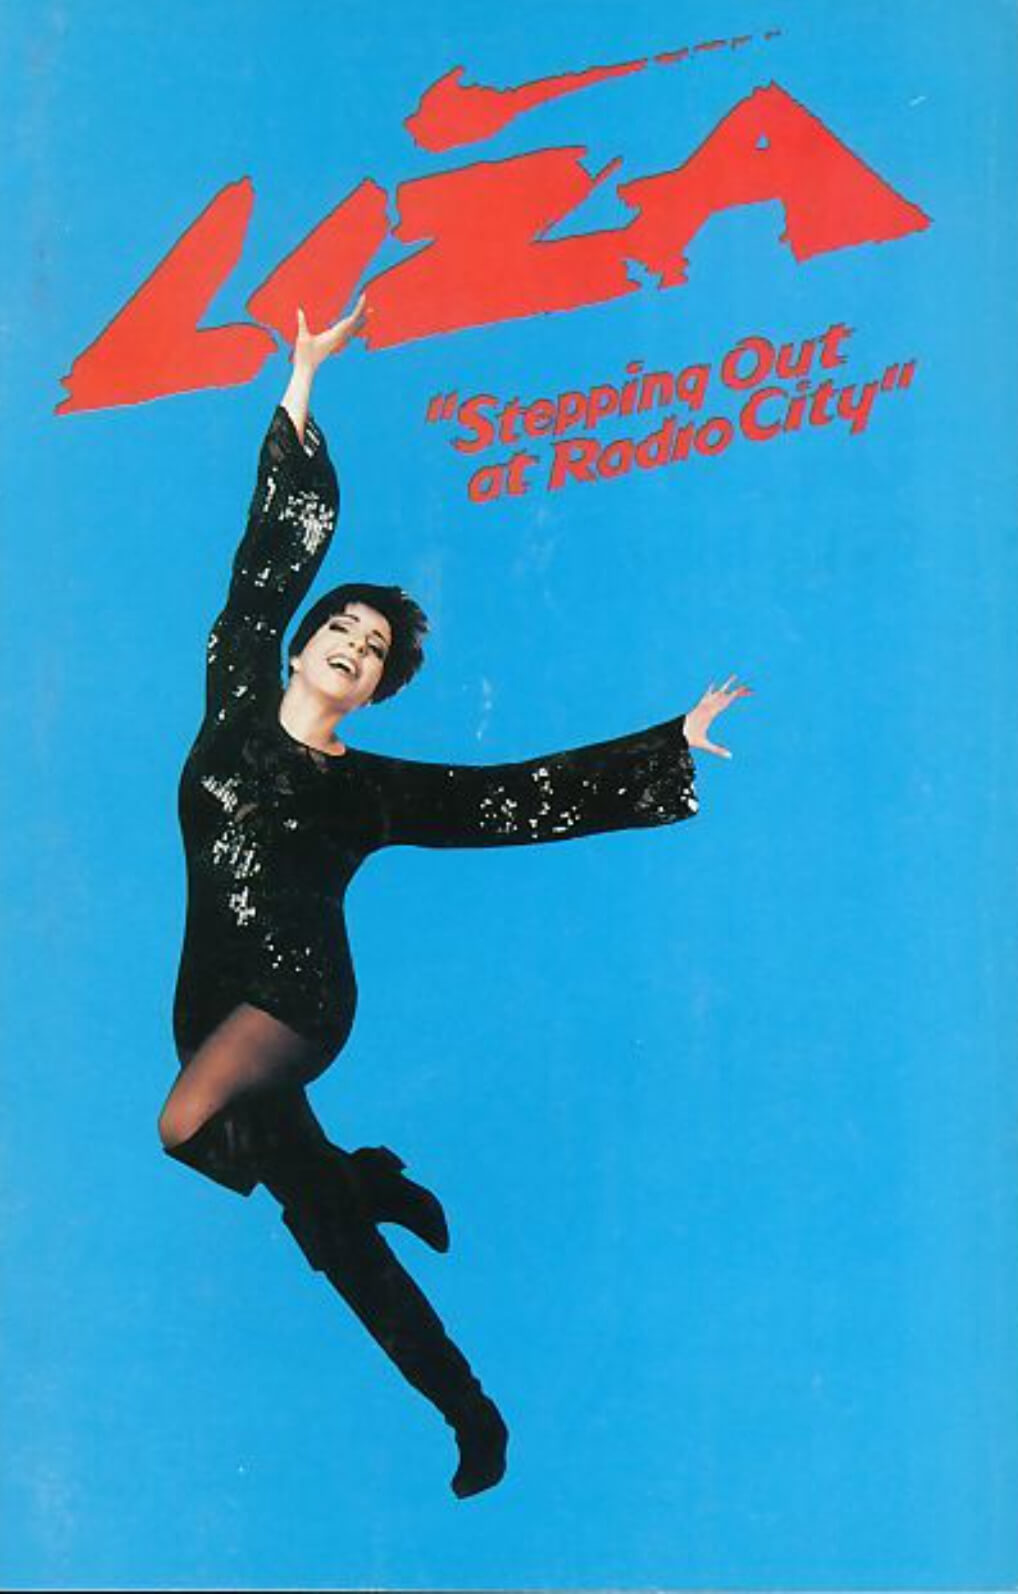 Logo image for Liza: Stepping Out at Radio City. Liza, dressed in a sparkly black dress, on a blue background with the title in red above her.